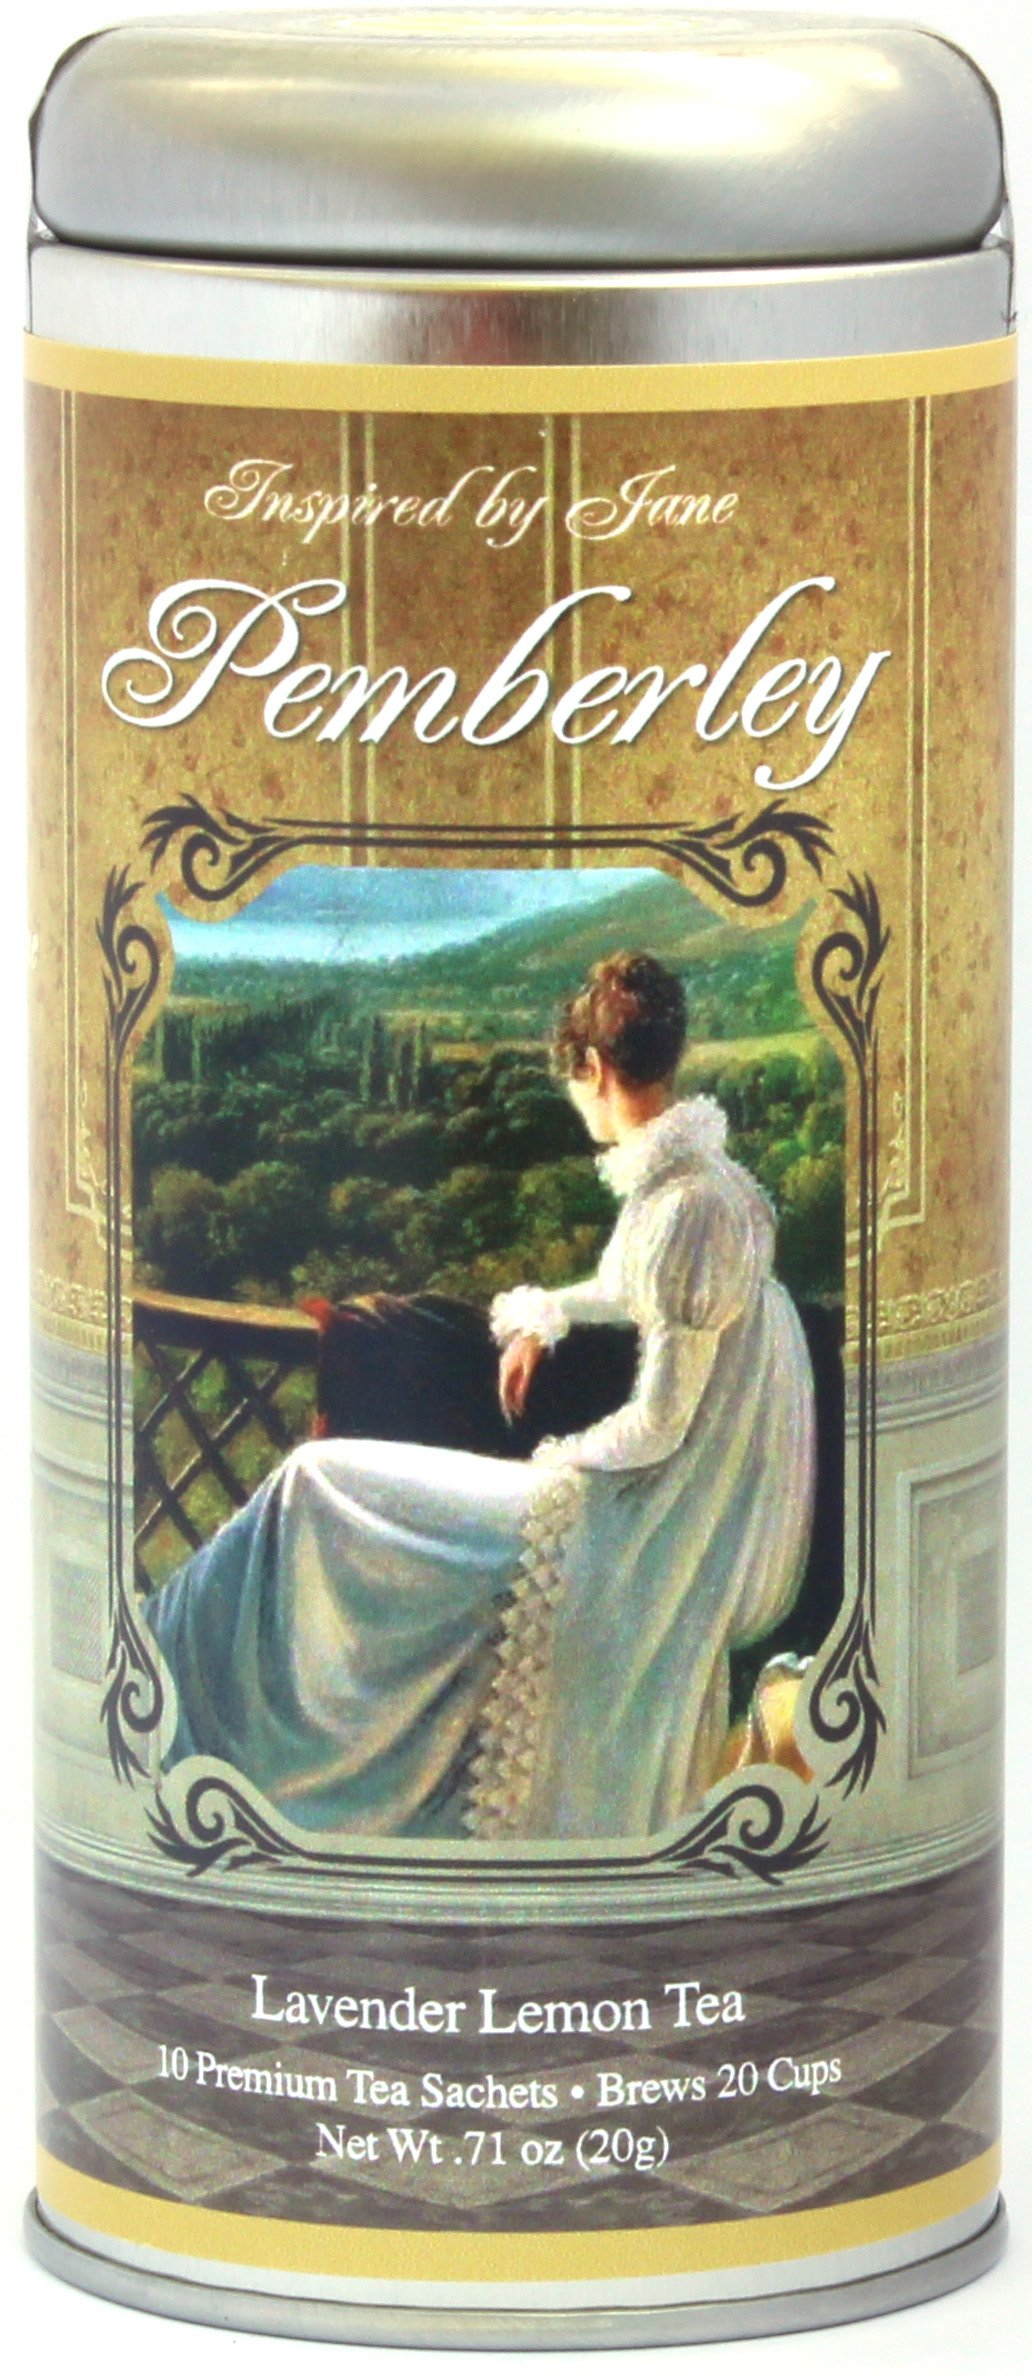 Mr. Darcy's Pemberley - Lavender and Lemongrass Tea From the Inspired By Jane Austen Premium Gourmet Tea Gift Collection - Lovely Mother's Day Gift for Mom